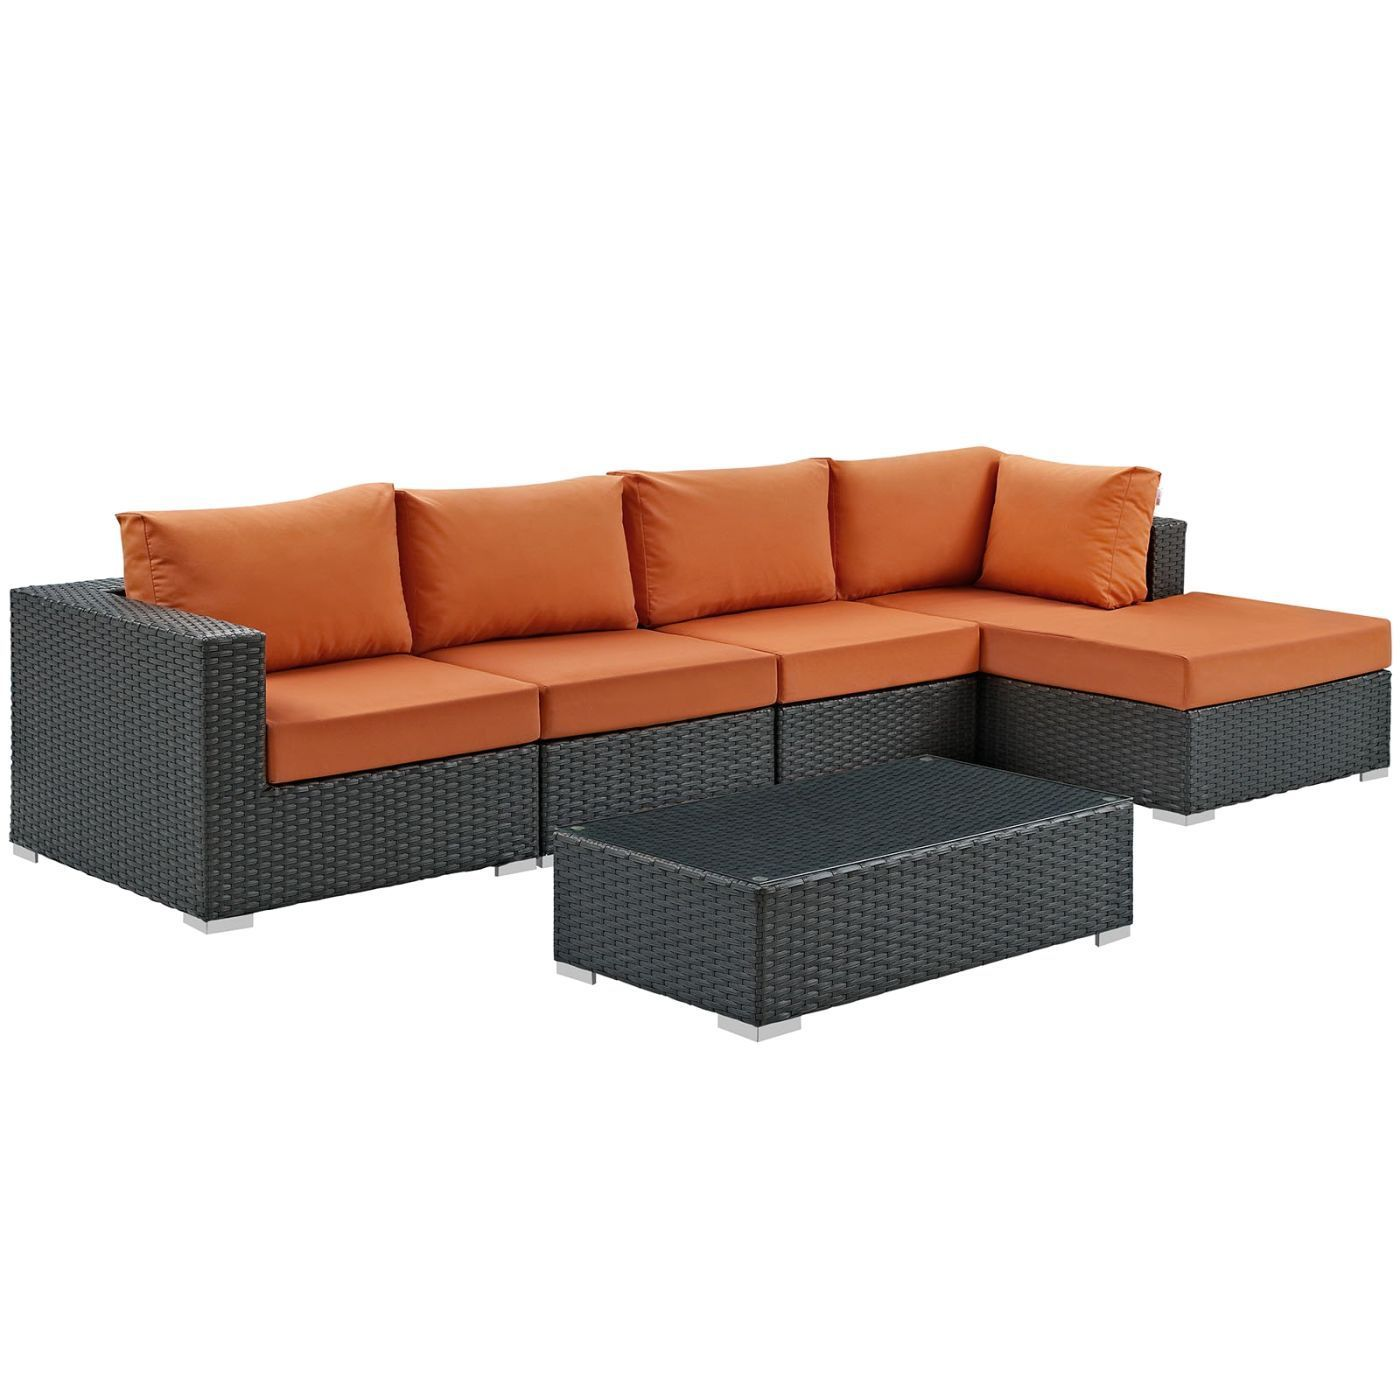 Modway Outdoor Patio Sets On Sale Eei 1886 Chc Tus Set Sojourn 5